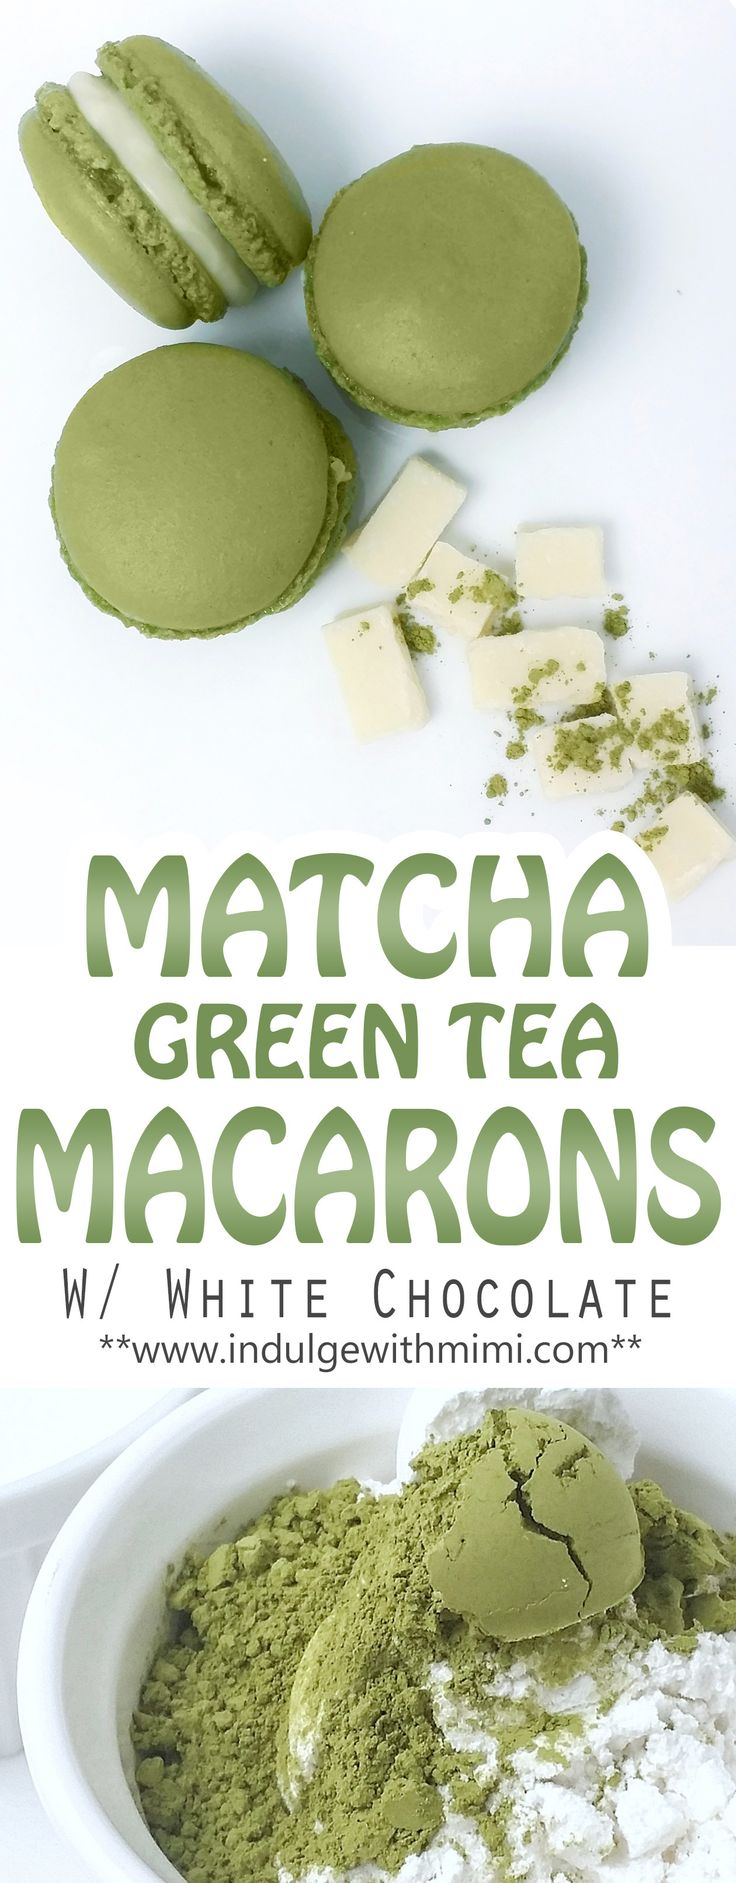 Recipe for Matcha Green Tea INFUSED Macaron Shells with White Chocolate